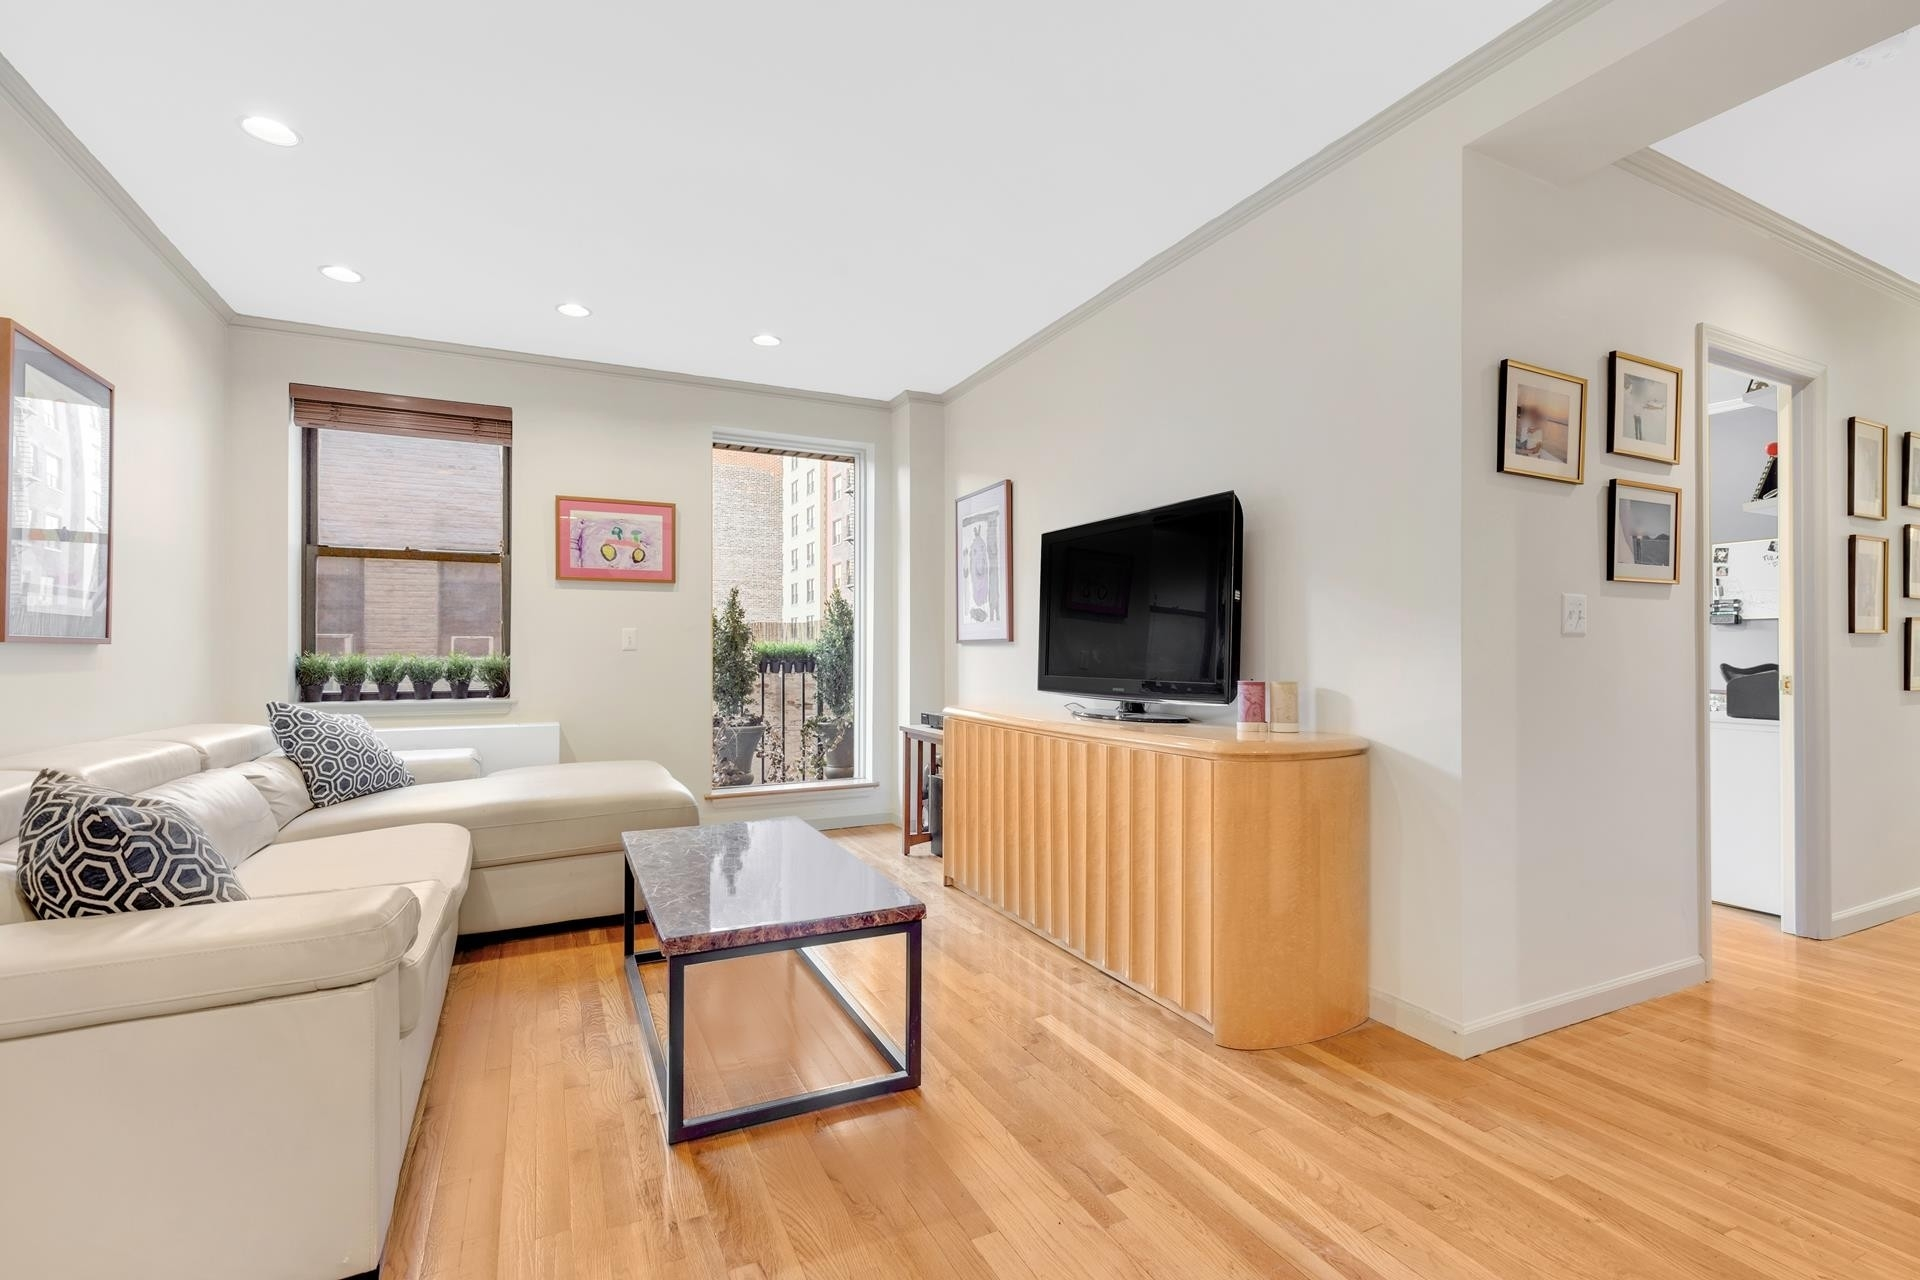 2. Condominiums for Sale at THE CHESTERFIELD, 186 W 80TH ST , 6B Upper West Side, New York, NY 10024